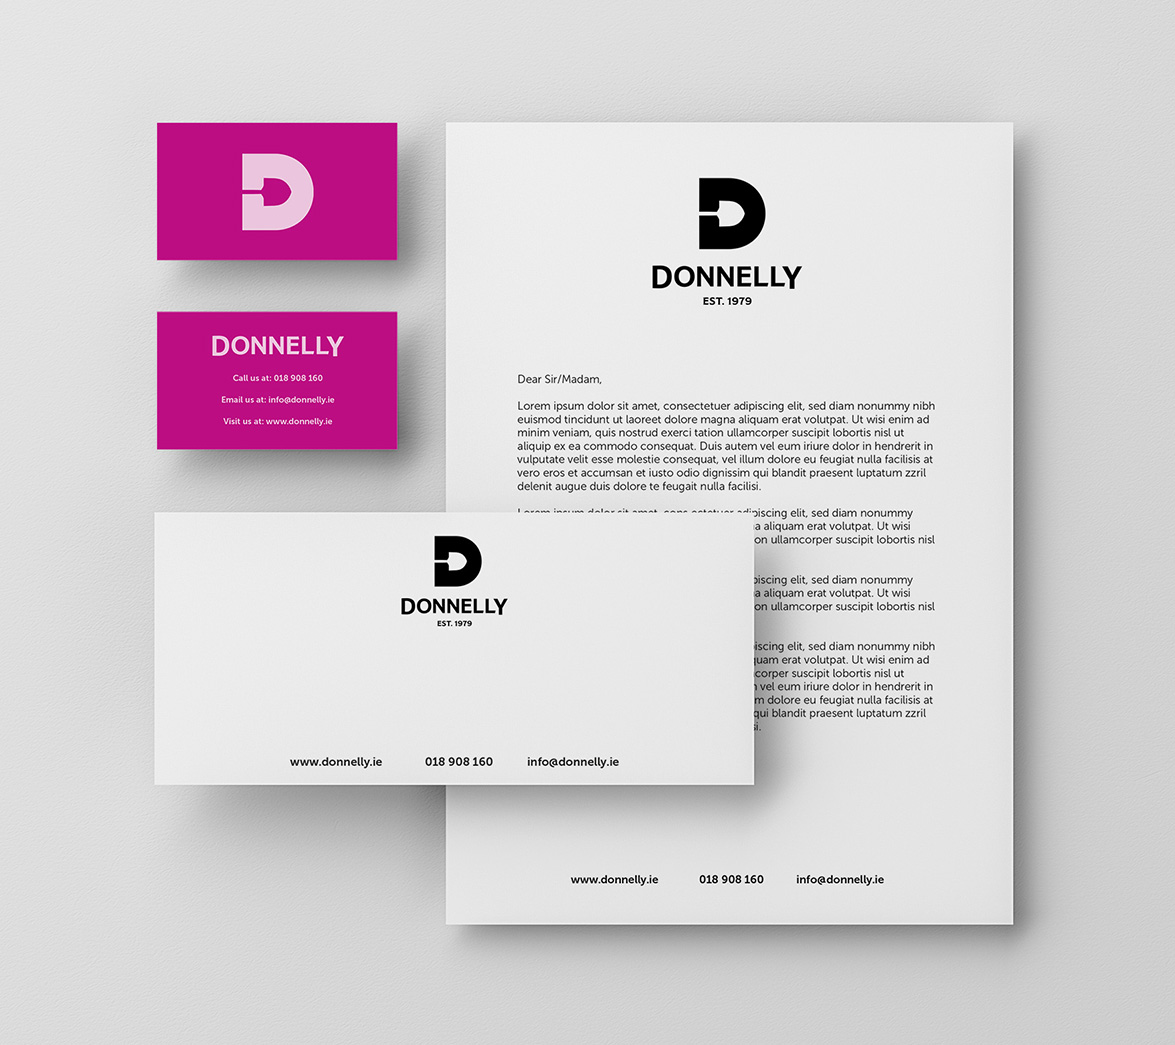 Stationery design for food brand Donnelly, designed by White Bear Studio